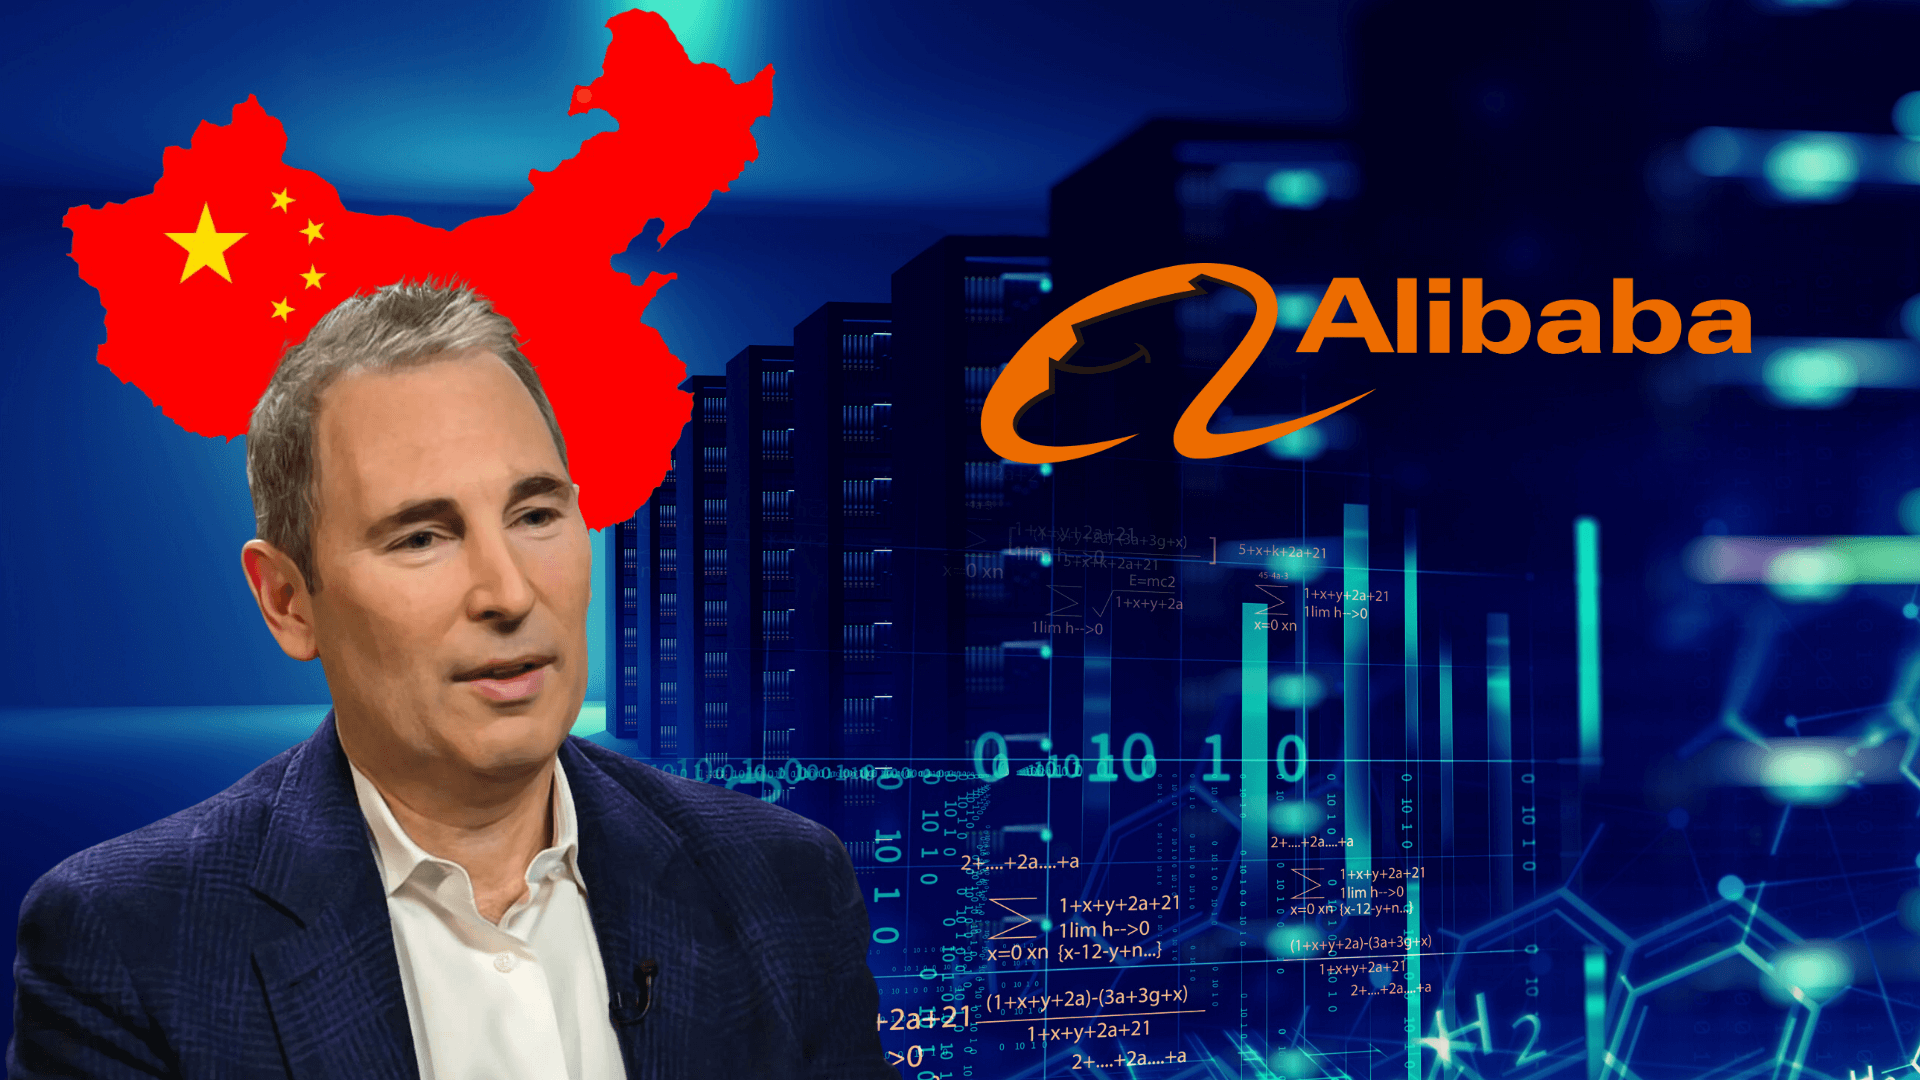 AWS CEO: Alibaba Cloud Growing in China, but Does Not Have Much of a Presence in the US